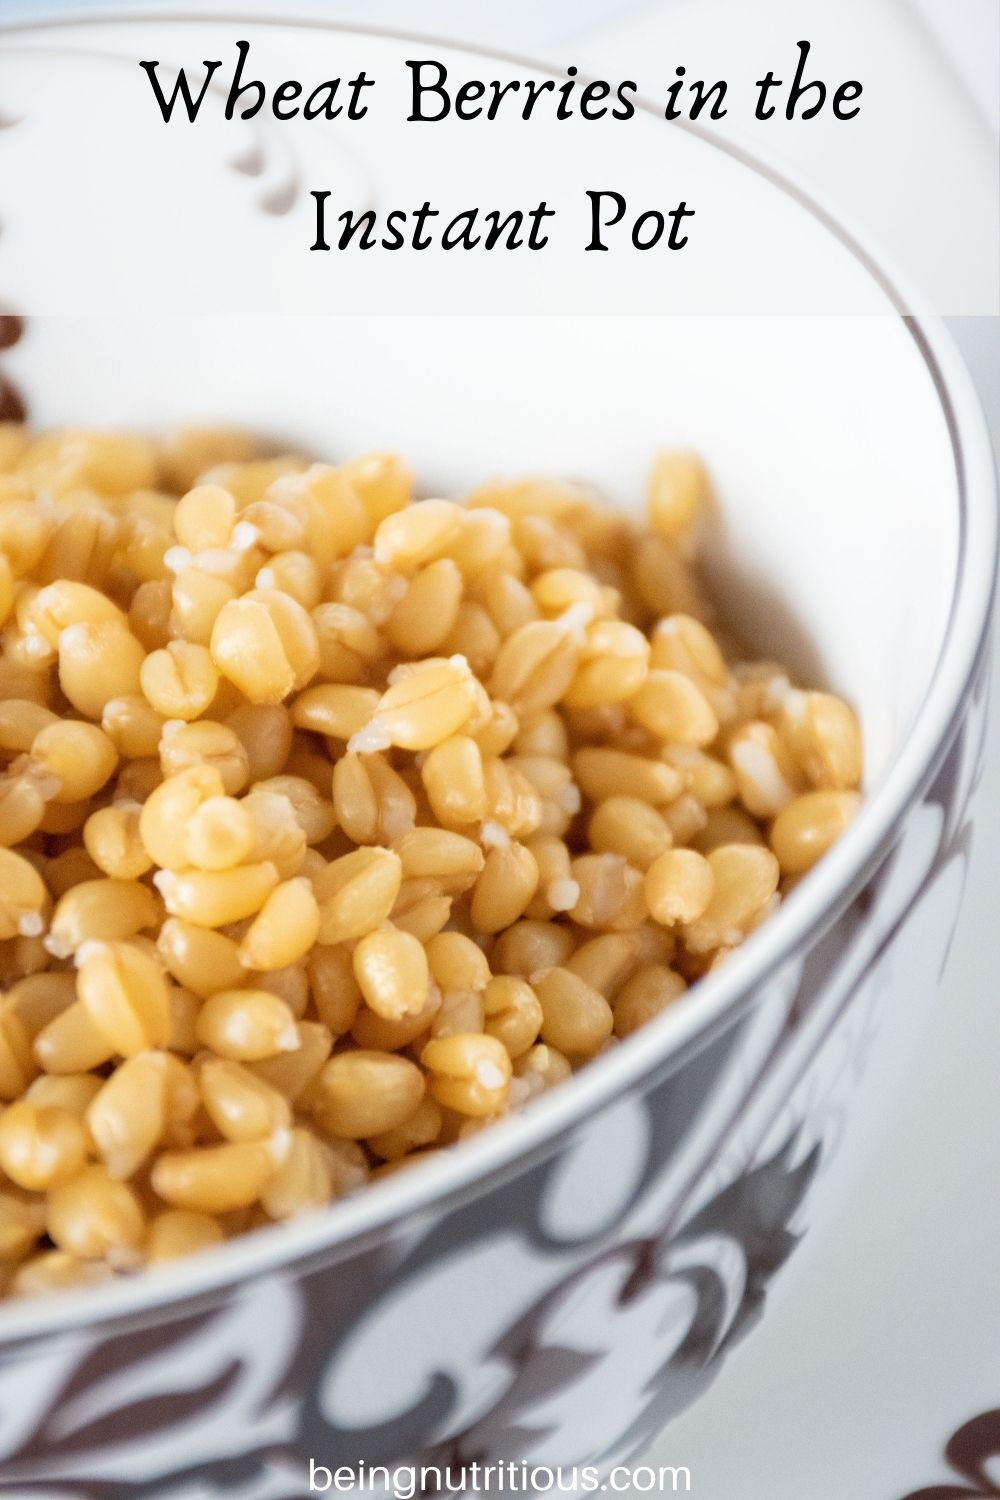 Bowl of cooked wheat berries. Text overlay: Wheat Berries in the Instant Pot.